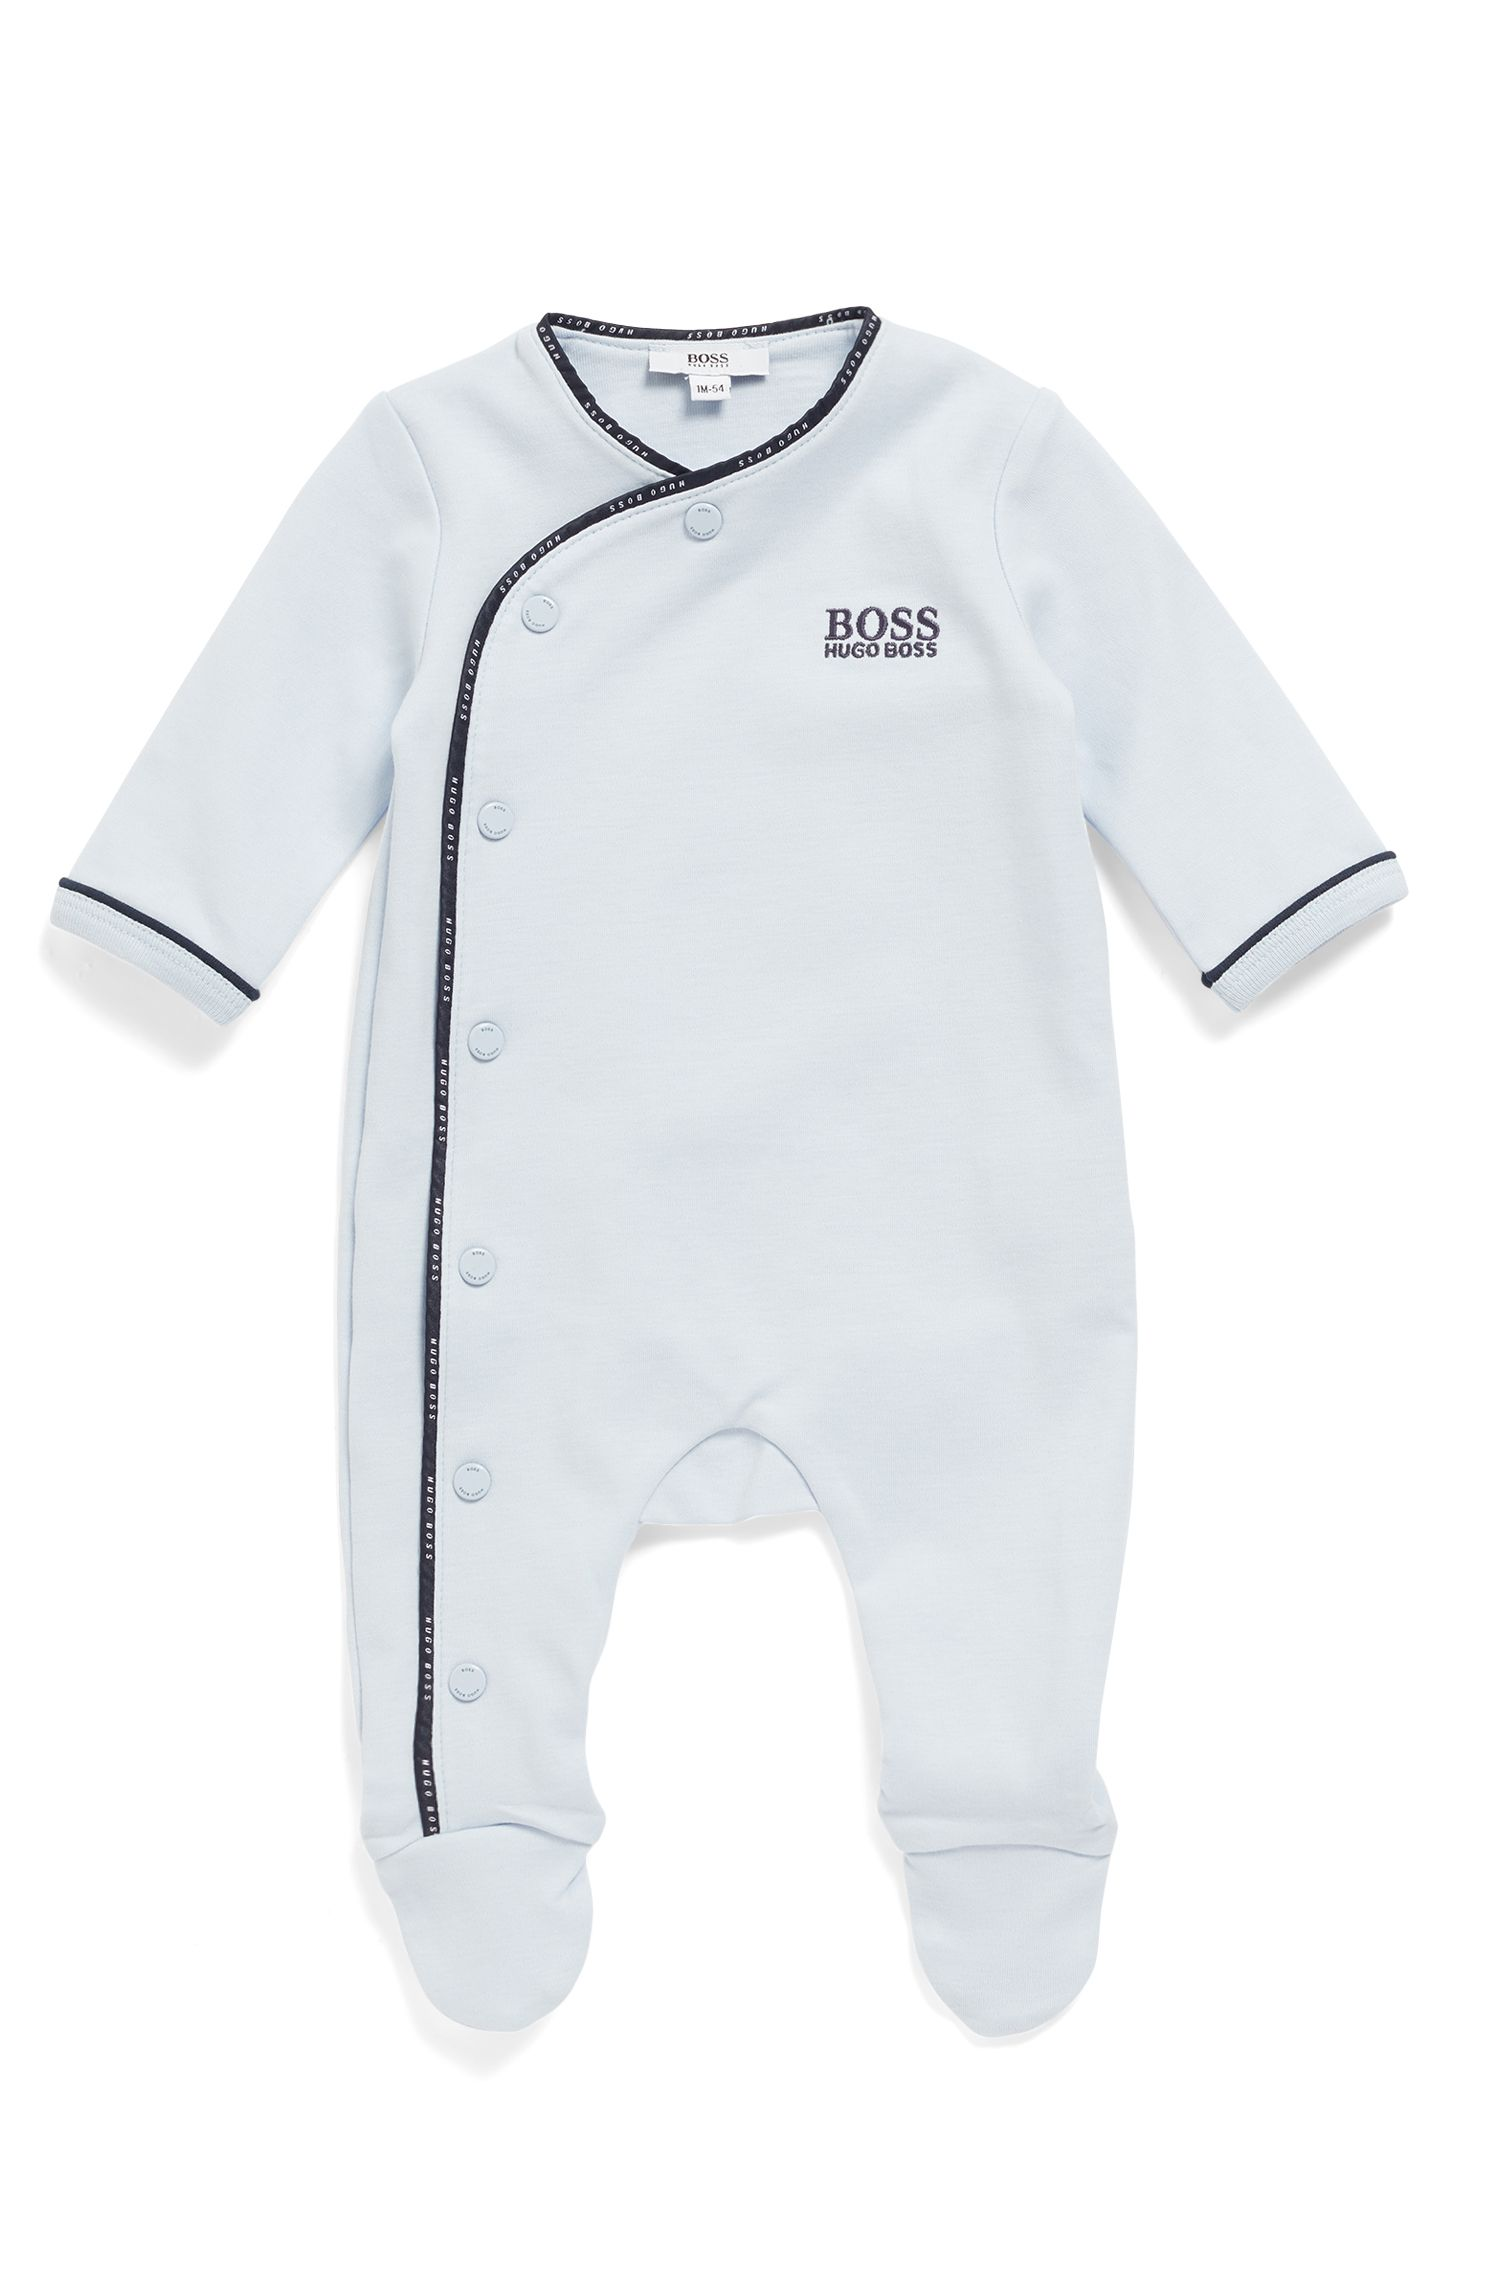 Baby sleepsuit in cotton with logo-braid binding, Light Blue